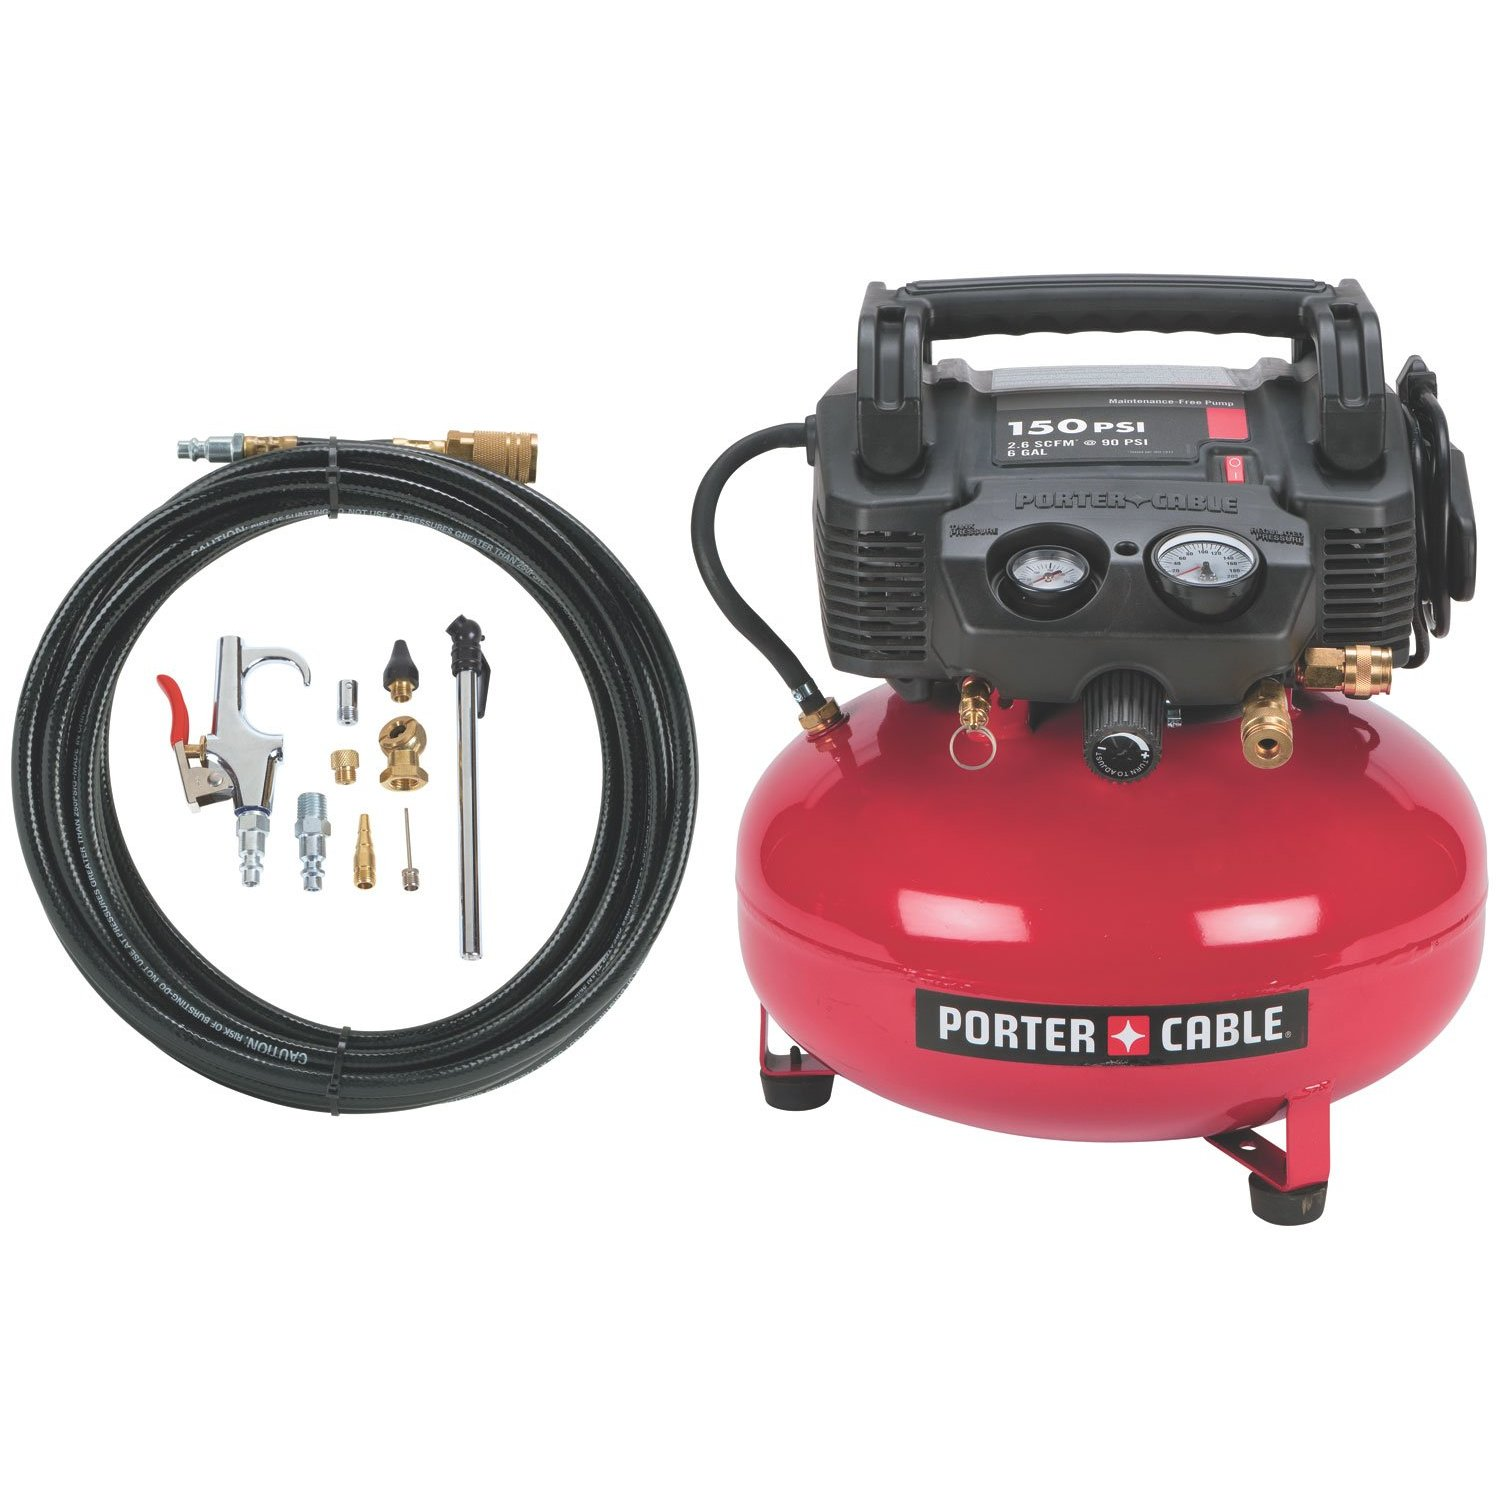 Porter cable pcfp12234 review for Can i use motor oil in my air compressor